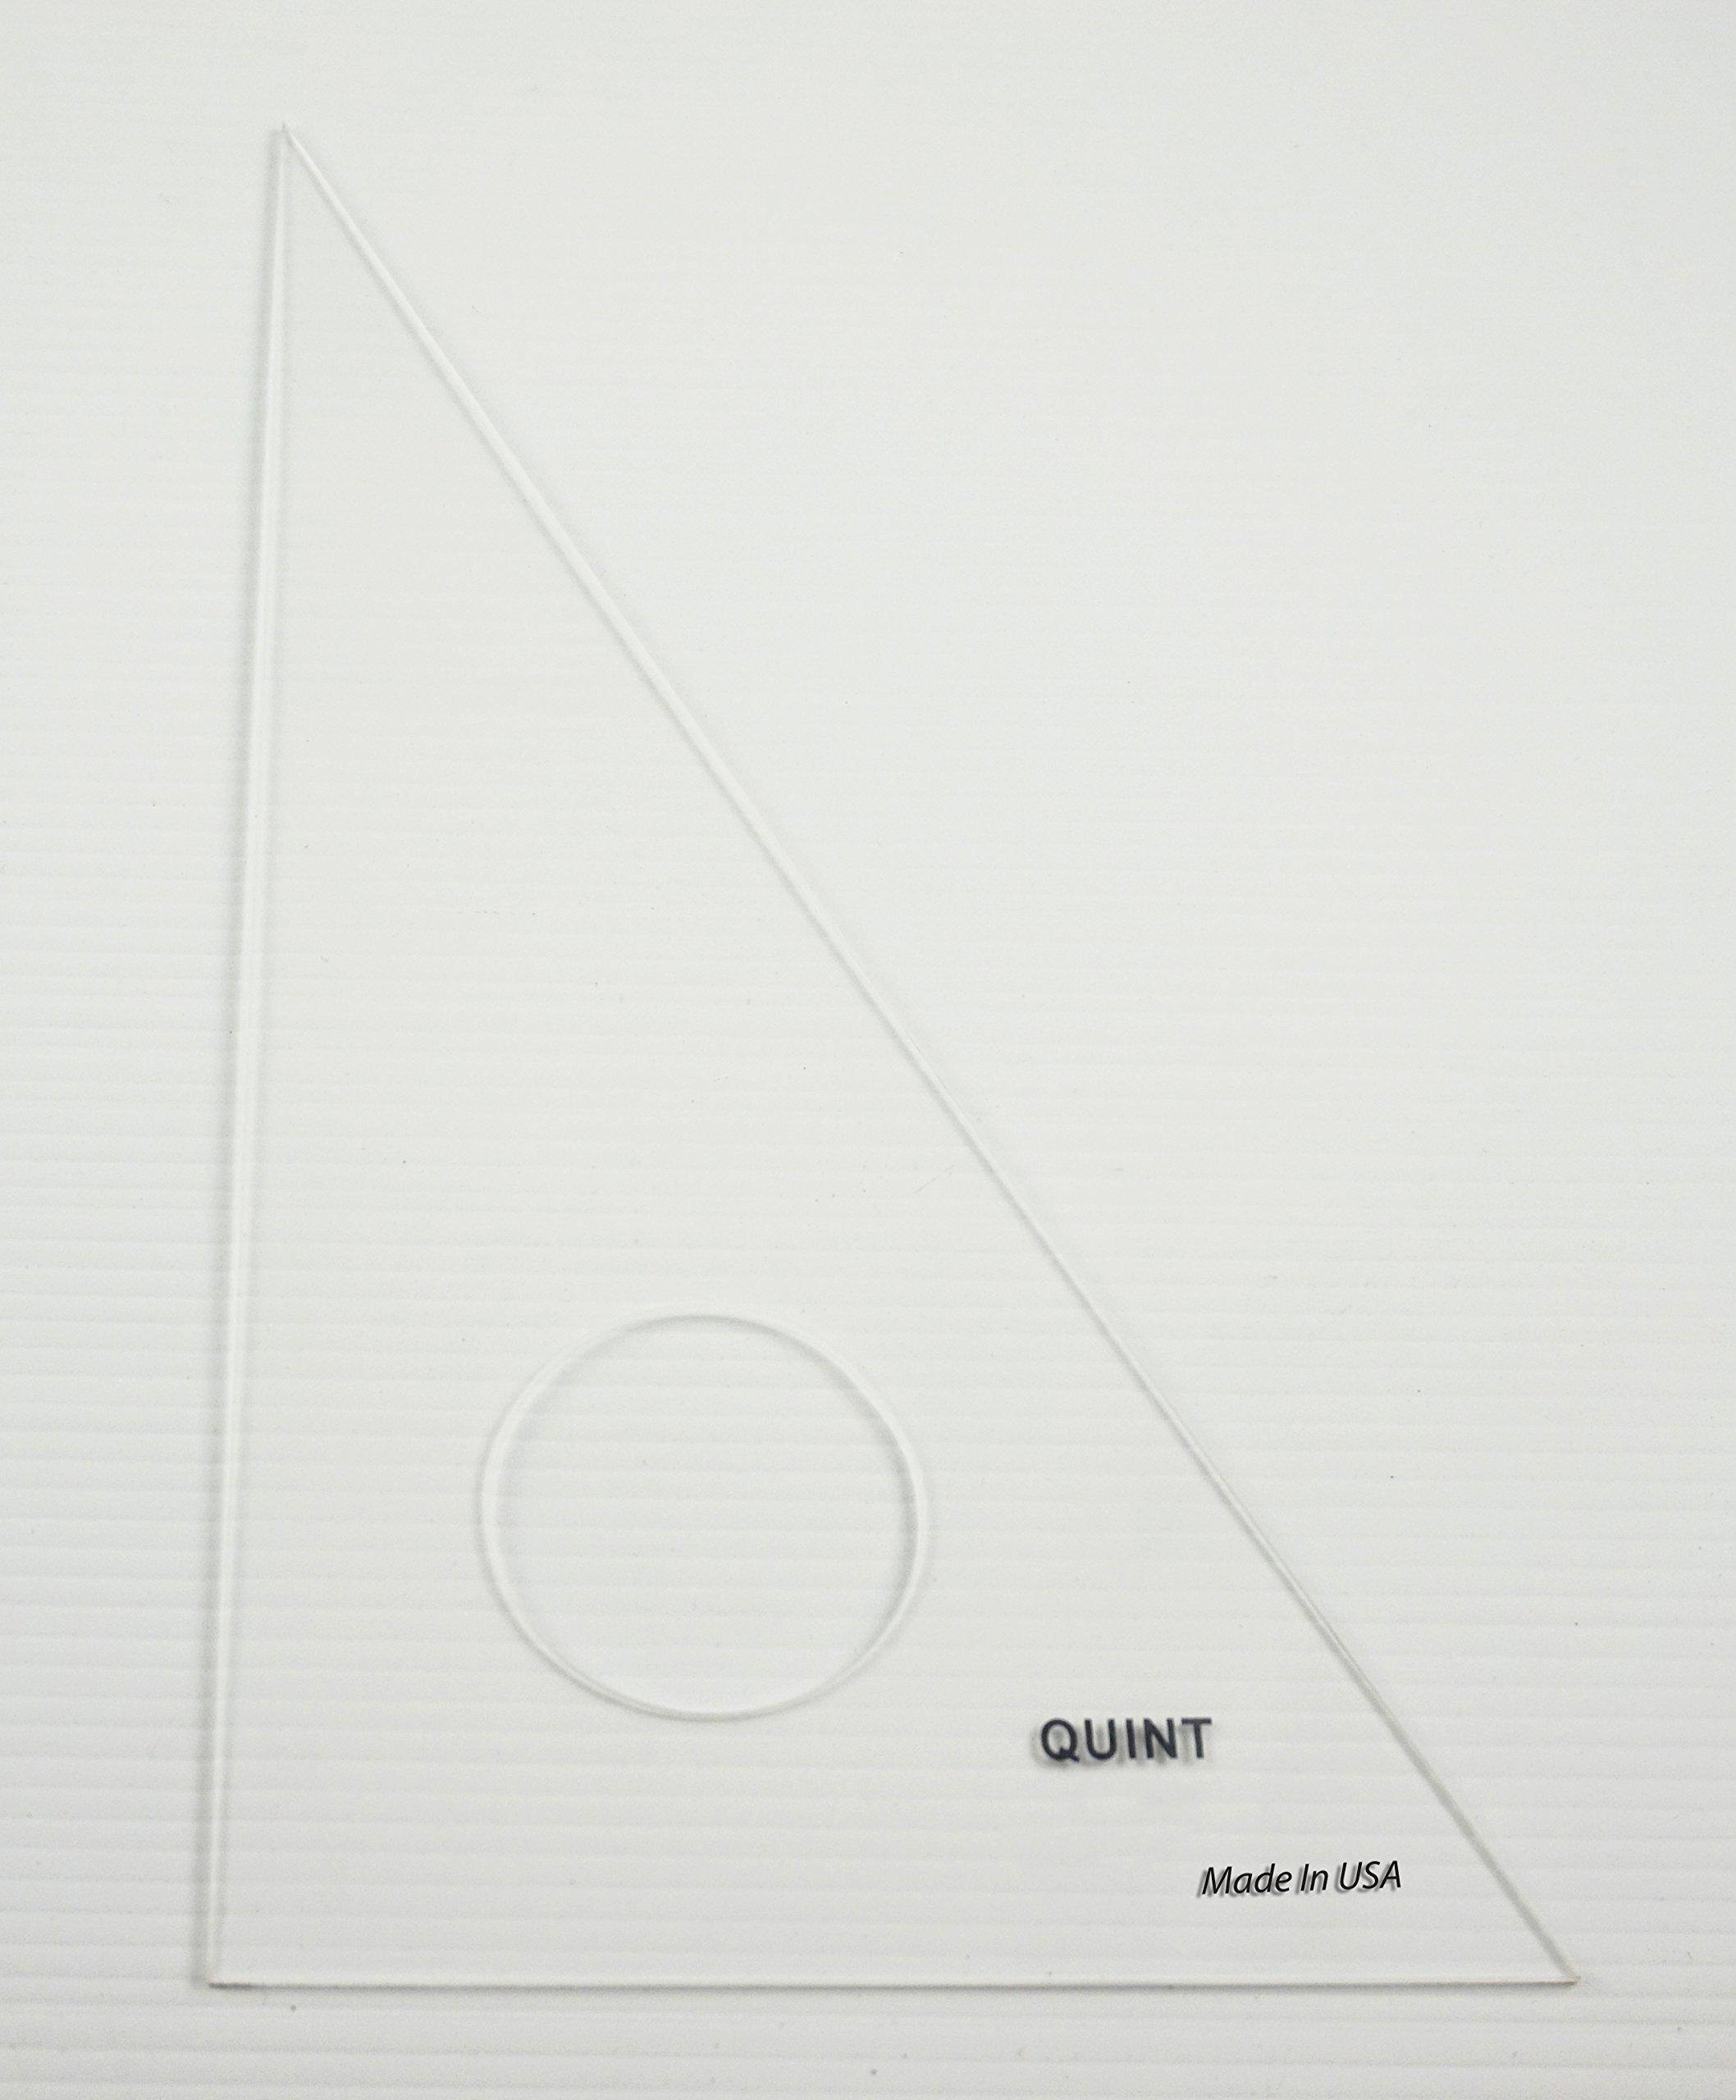 QUINT Premium Unbreakable Clear Academic Triangle 30/60 - 12'' 20-Pack by Quint Measuring Systems